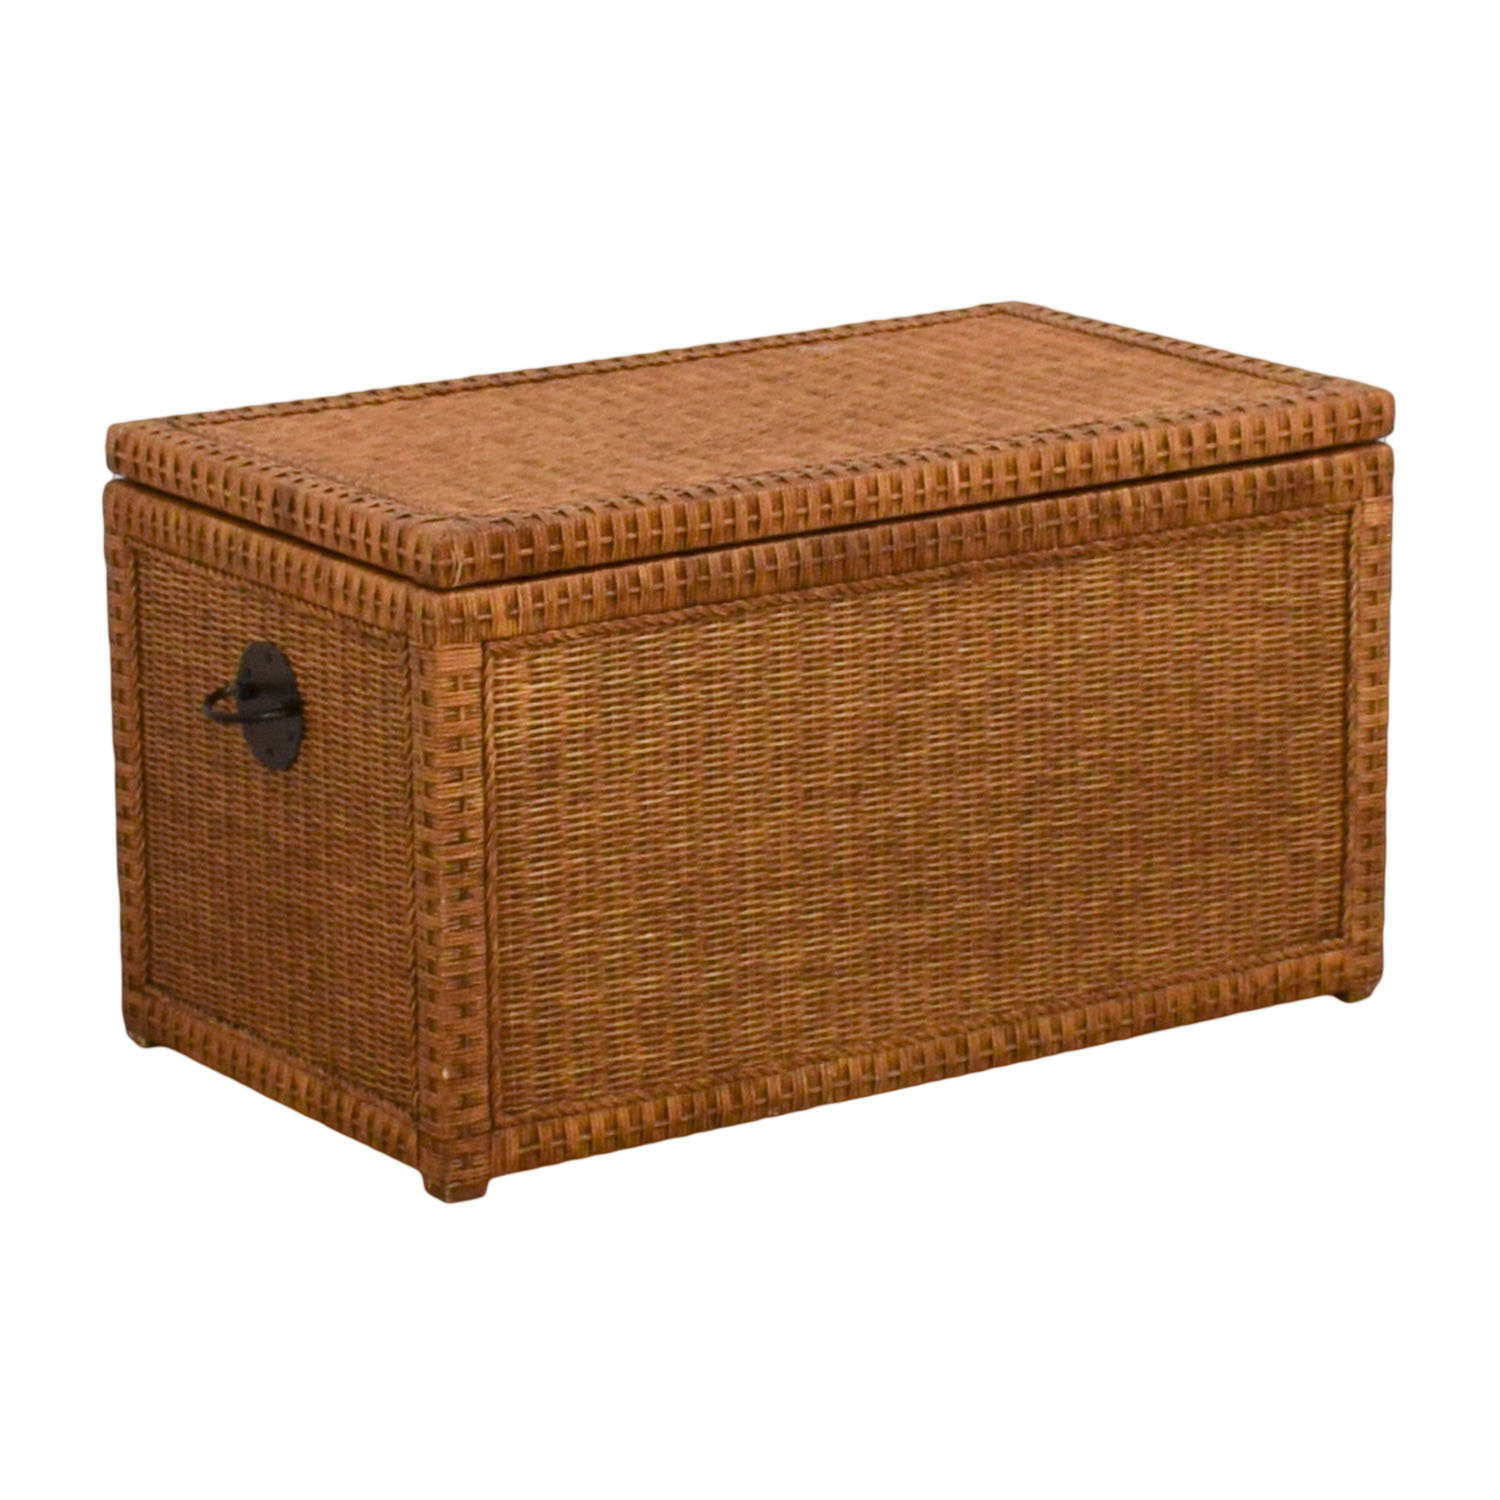 78 Off Pier 1 Pier One Wicker Trunk Storage